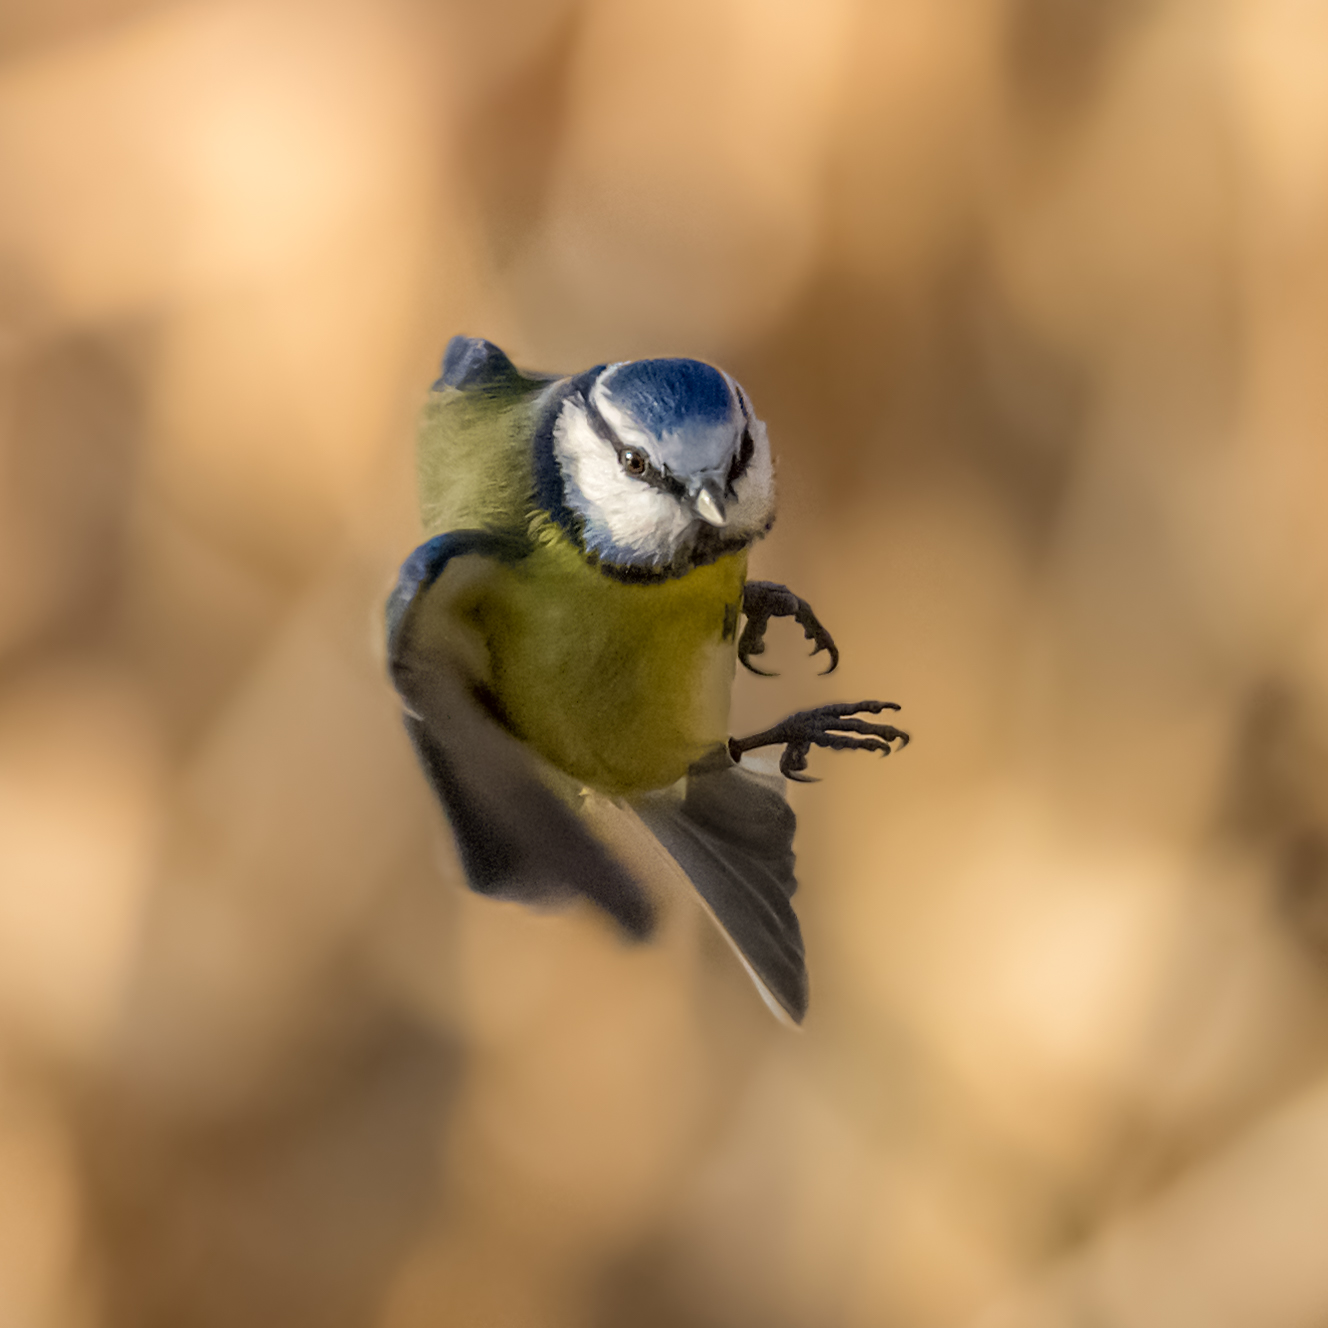 Oncoming Blue Tit